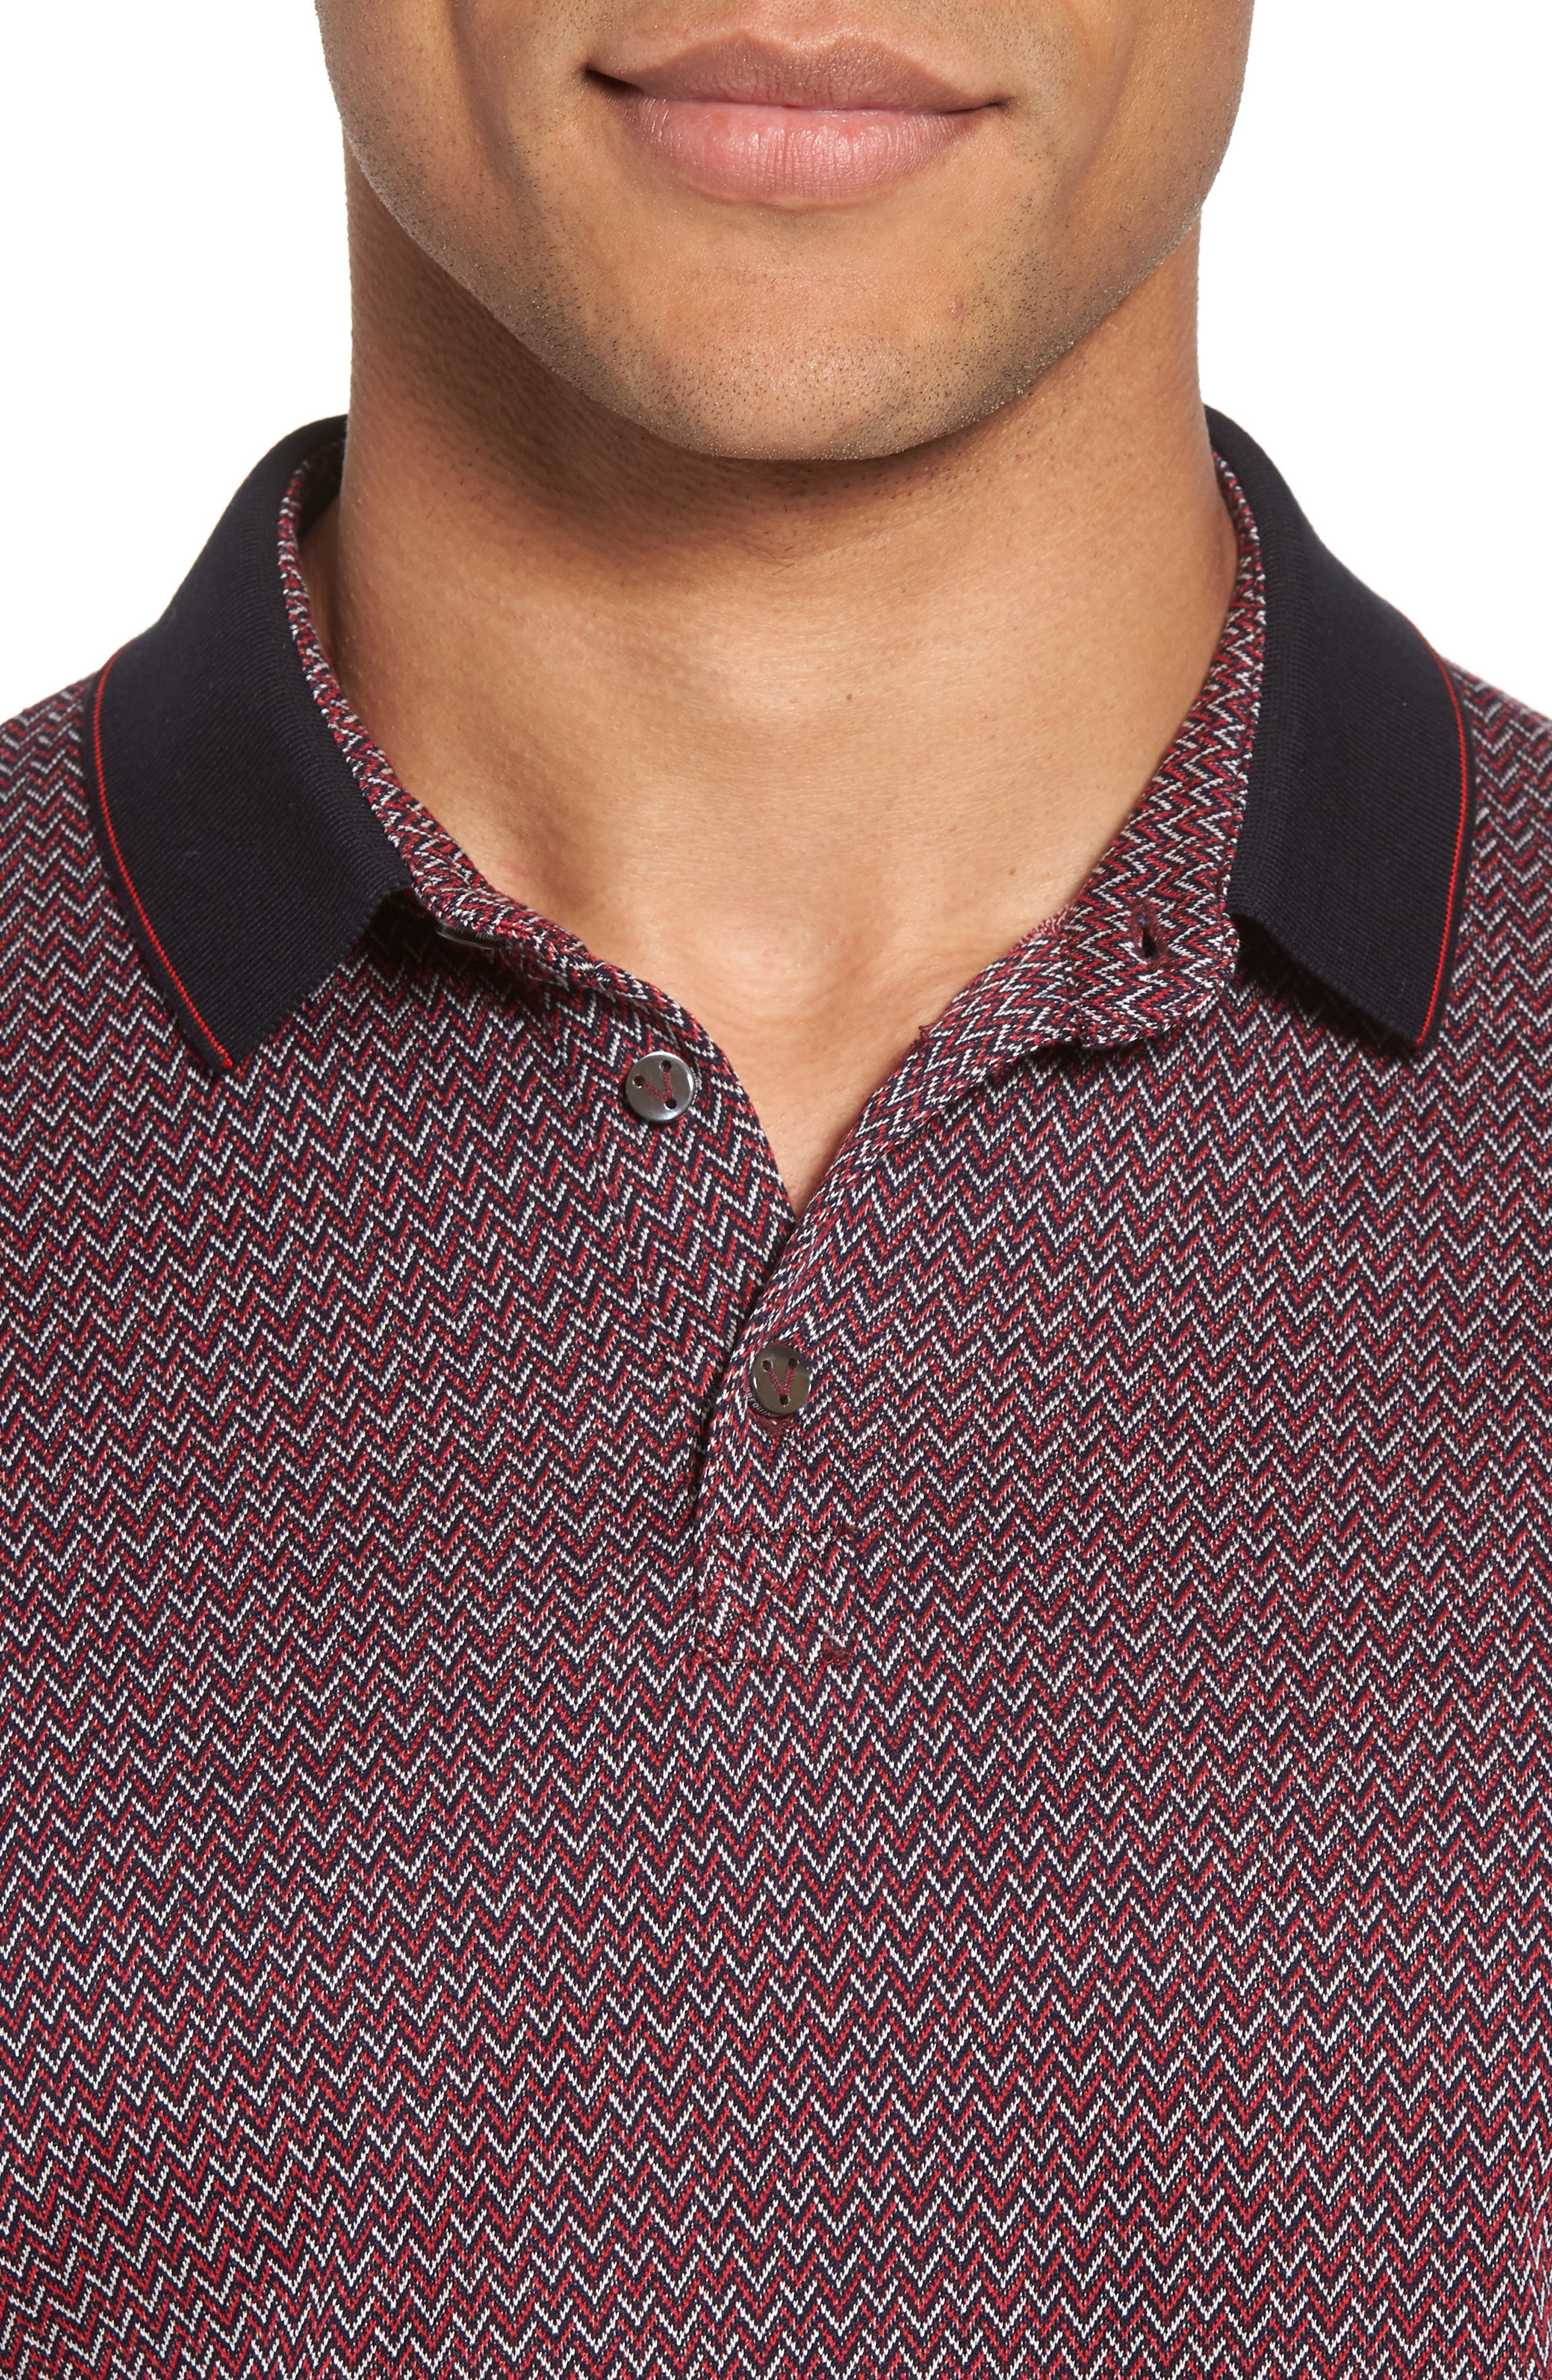 Jacquard Polo,                             Alternate thumbnail 4, color,                             Squid Ink / Canvas / Red Coral